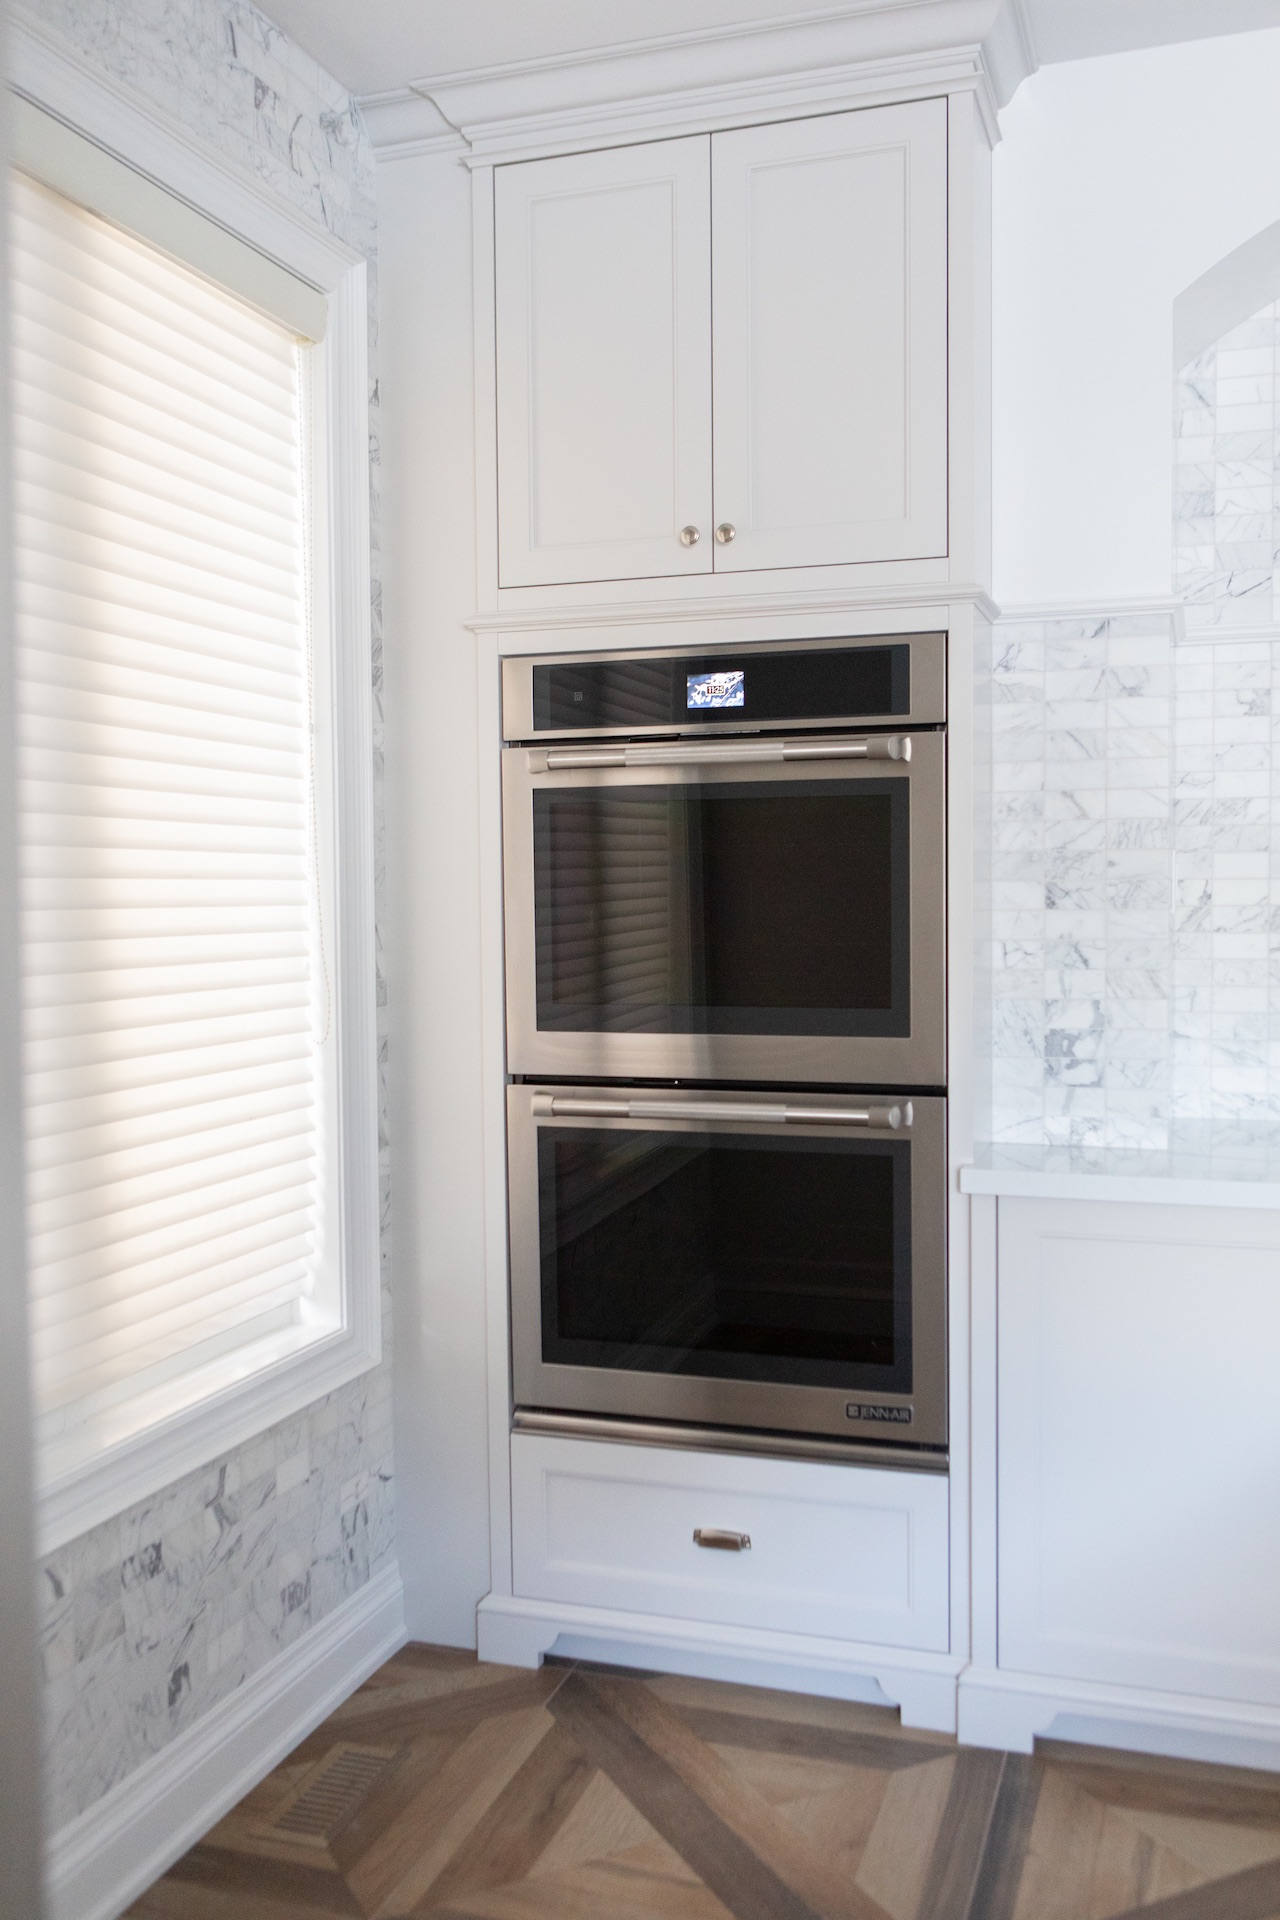 white cabinets with oven